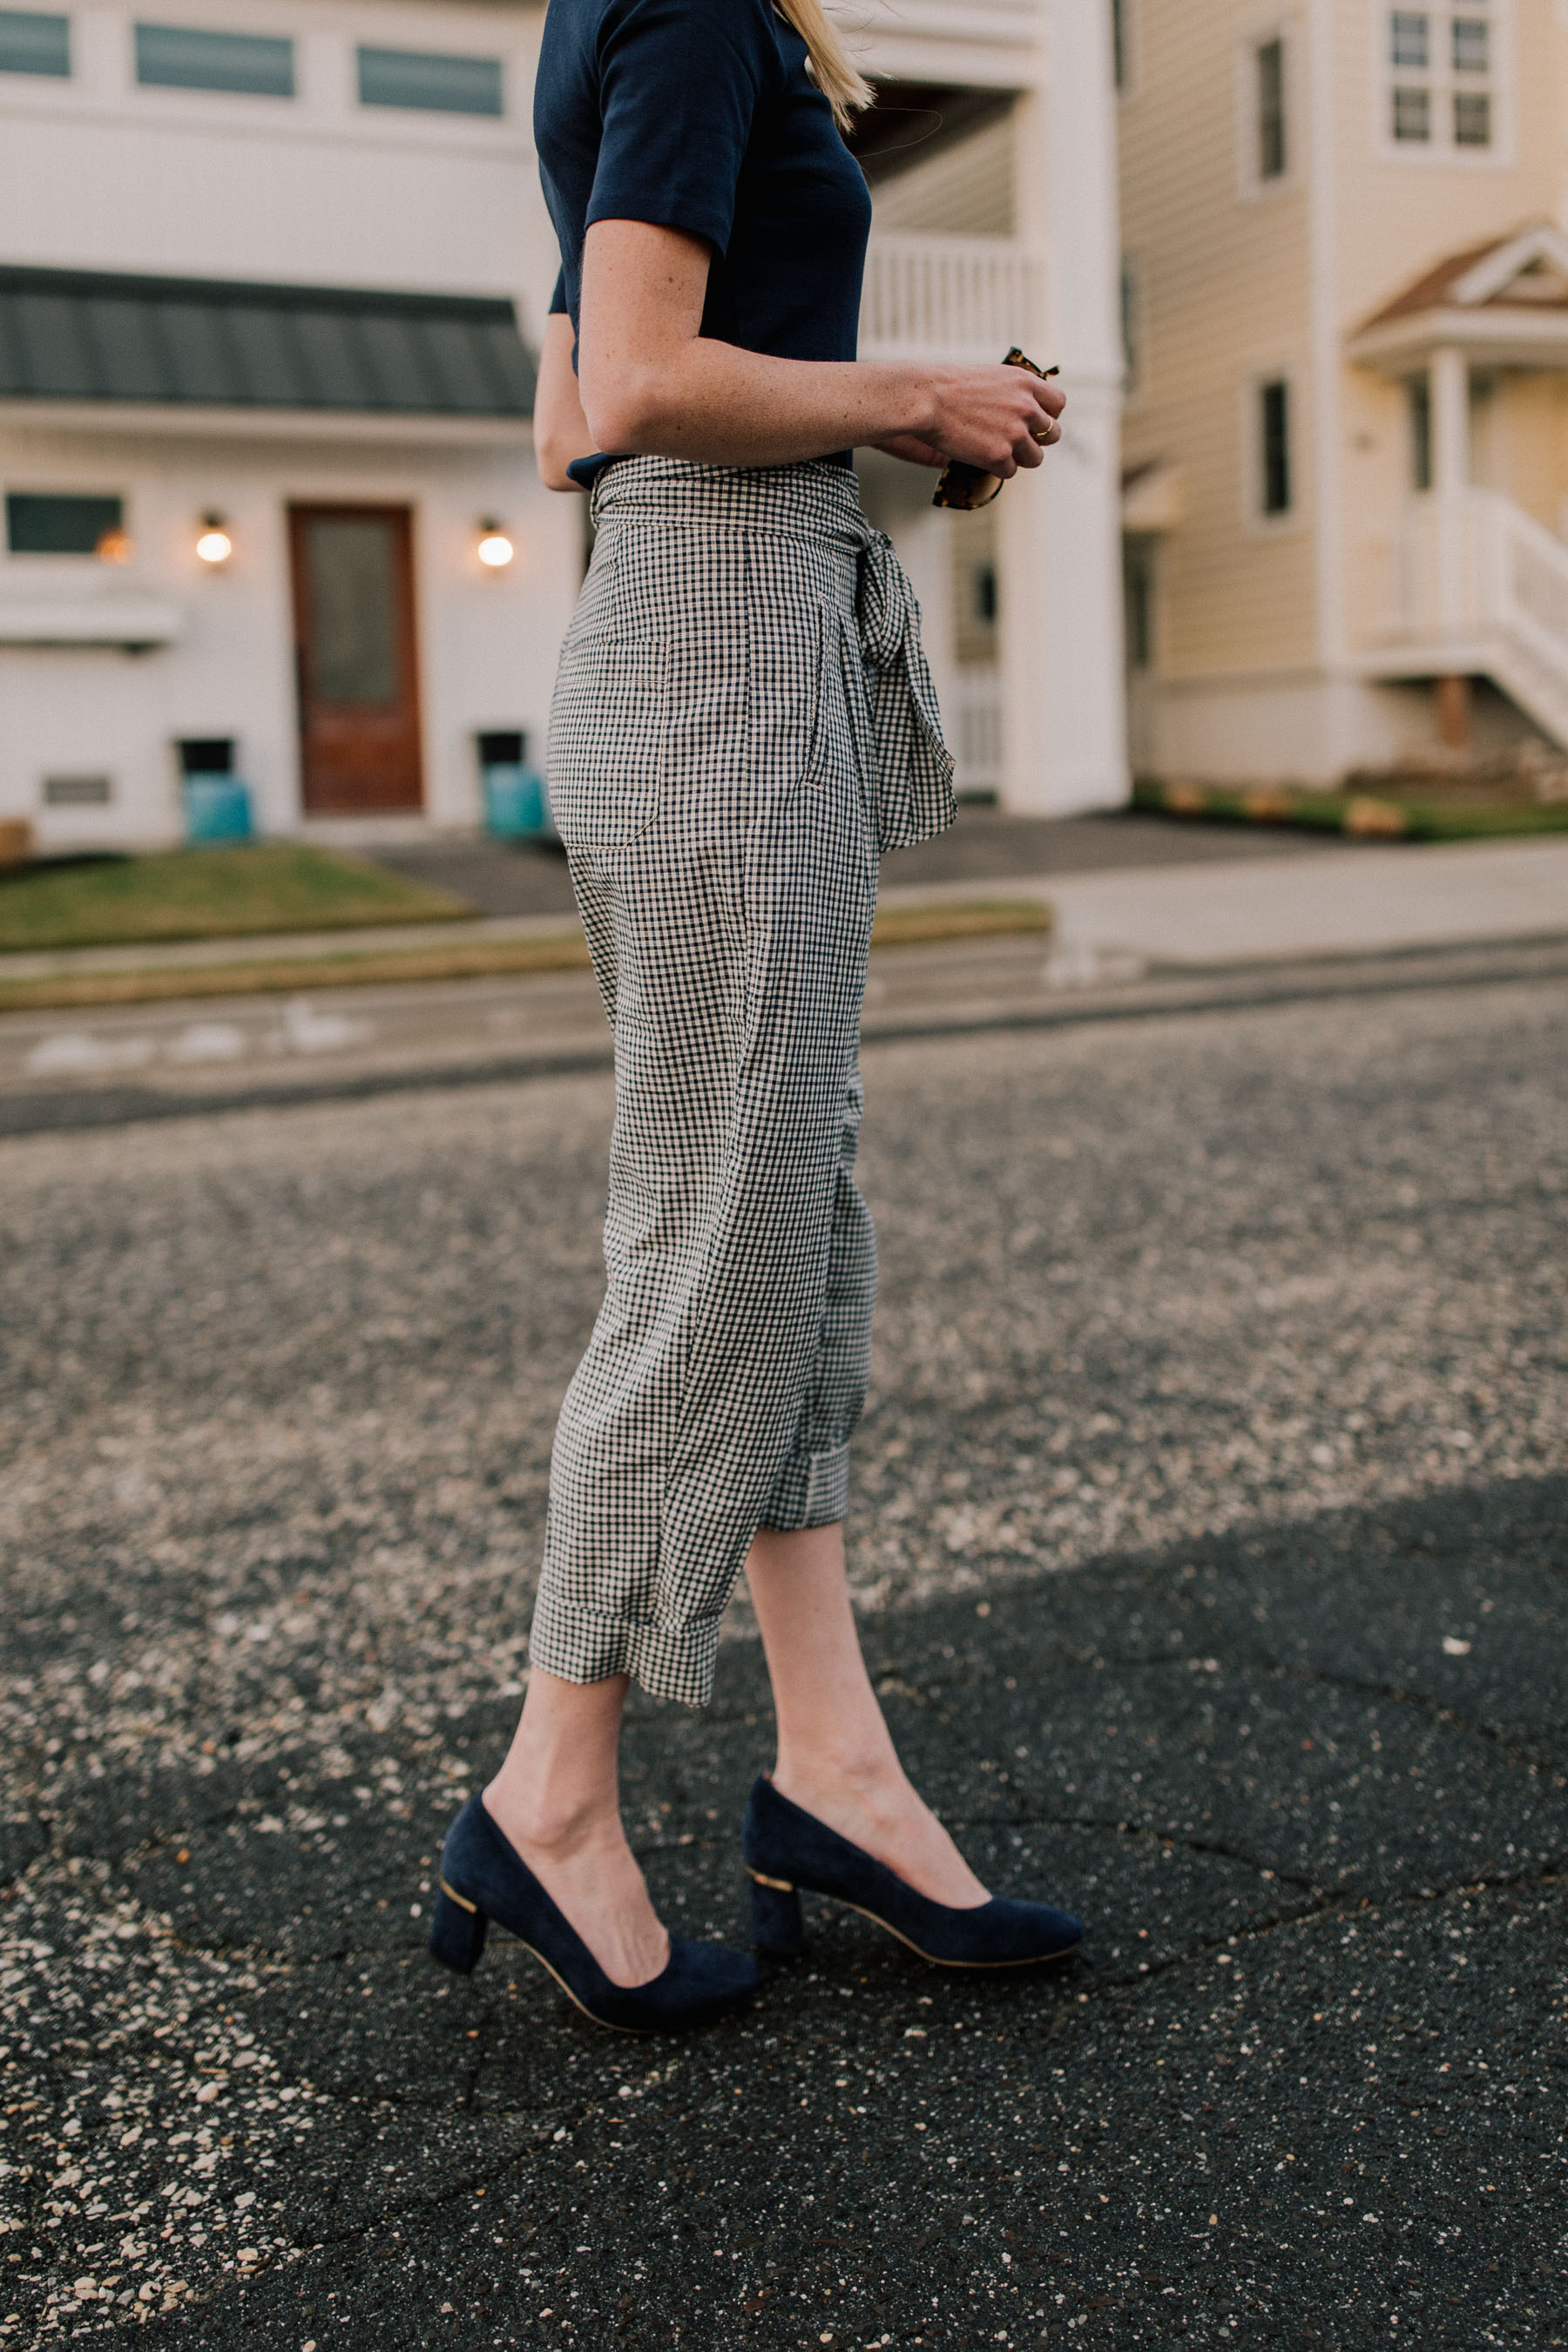 Kate Spade Pumps and Navy Trousers: Friday night down at the shore